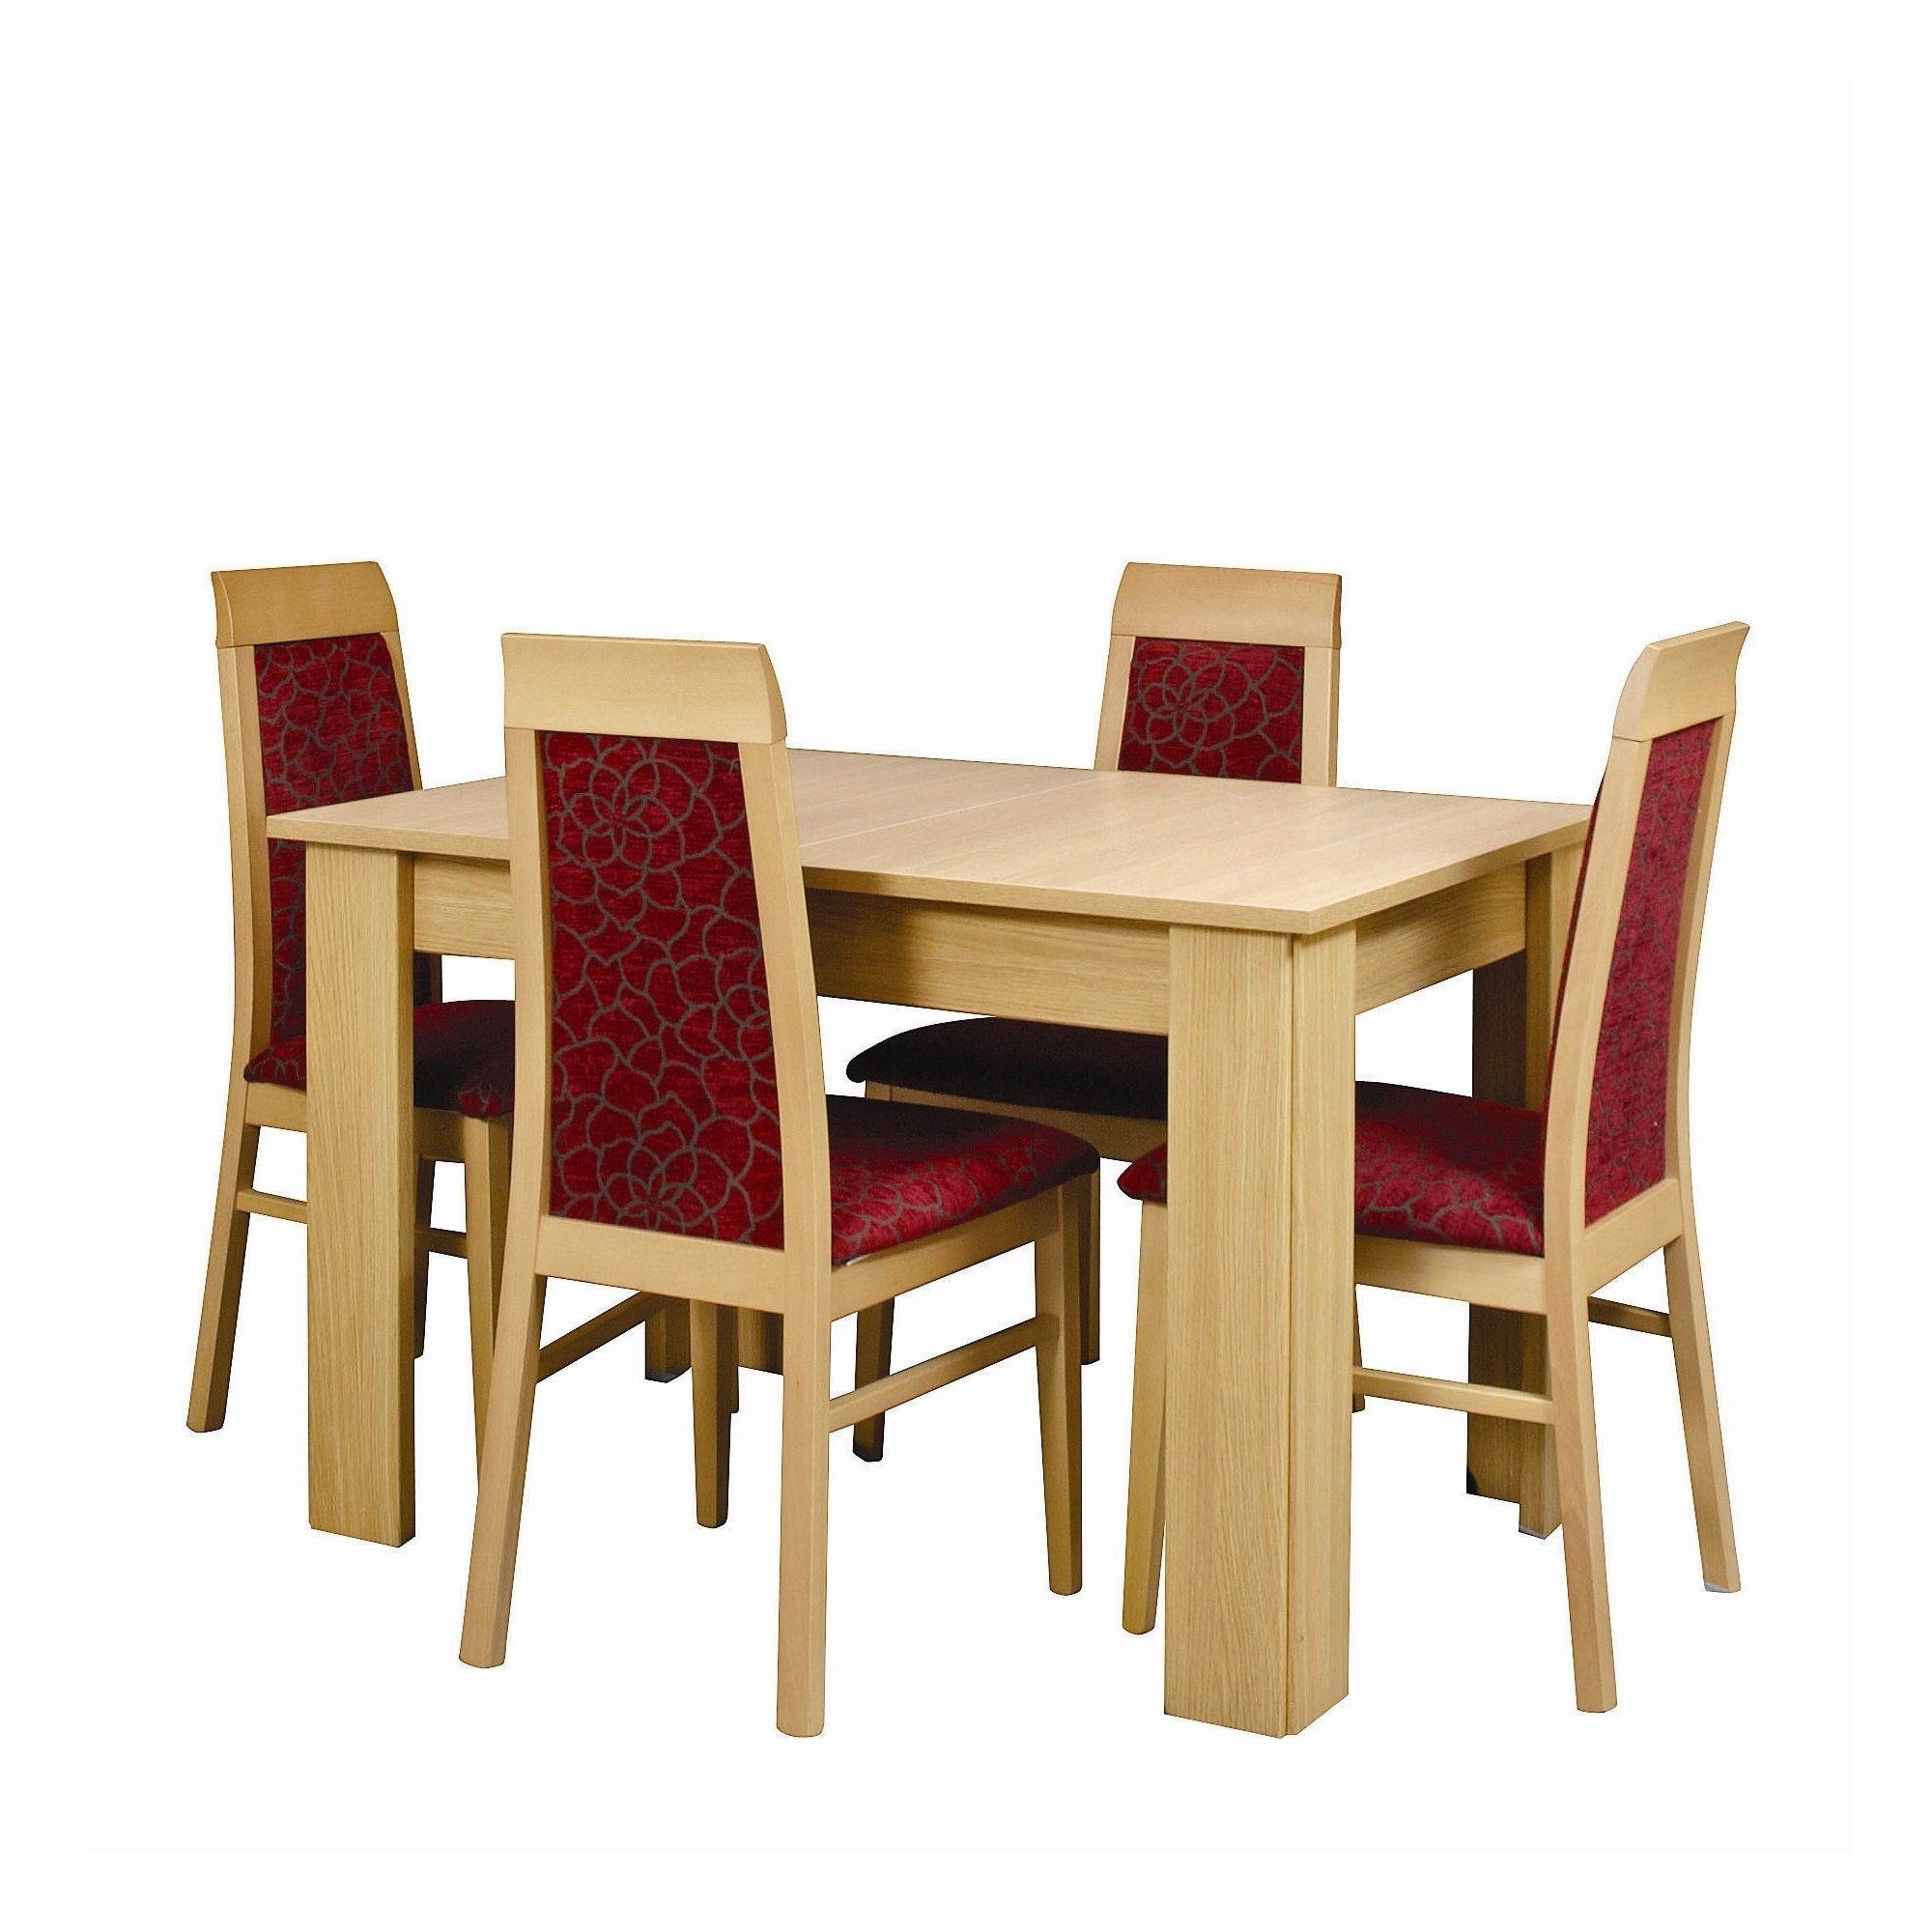 Other Caxton Huxley Dining Table Set with 6 Upholstered Dining Chair in Light Oak